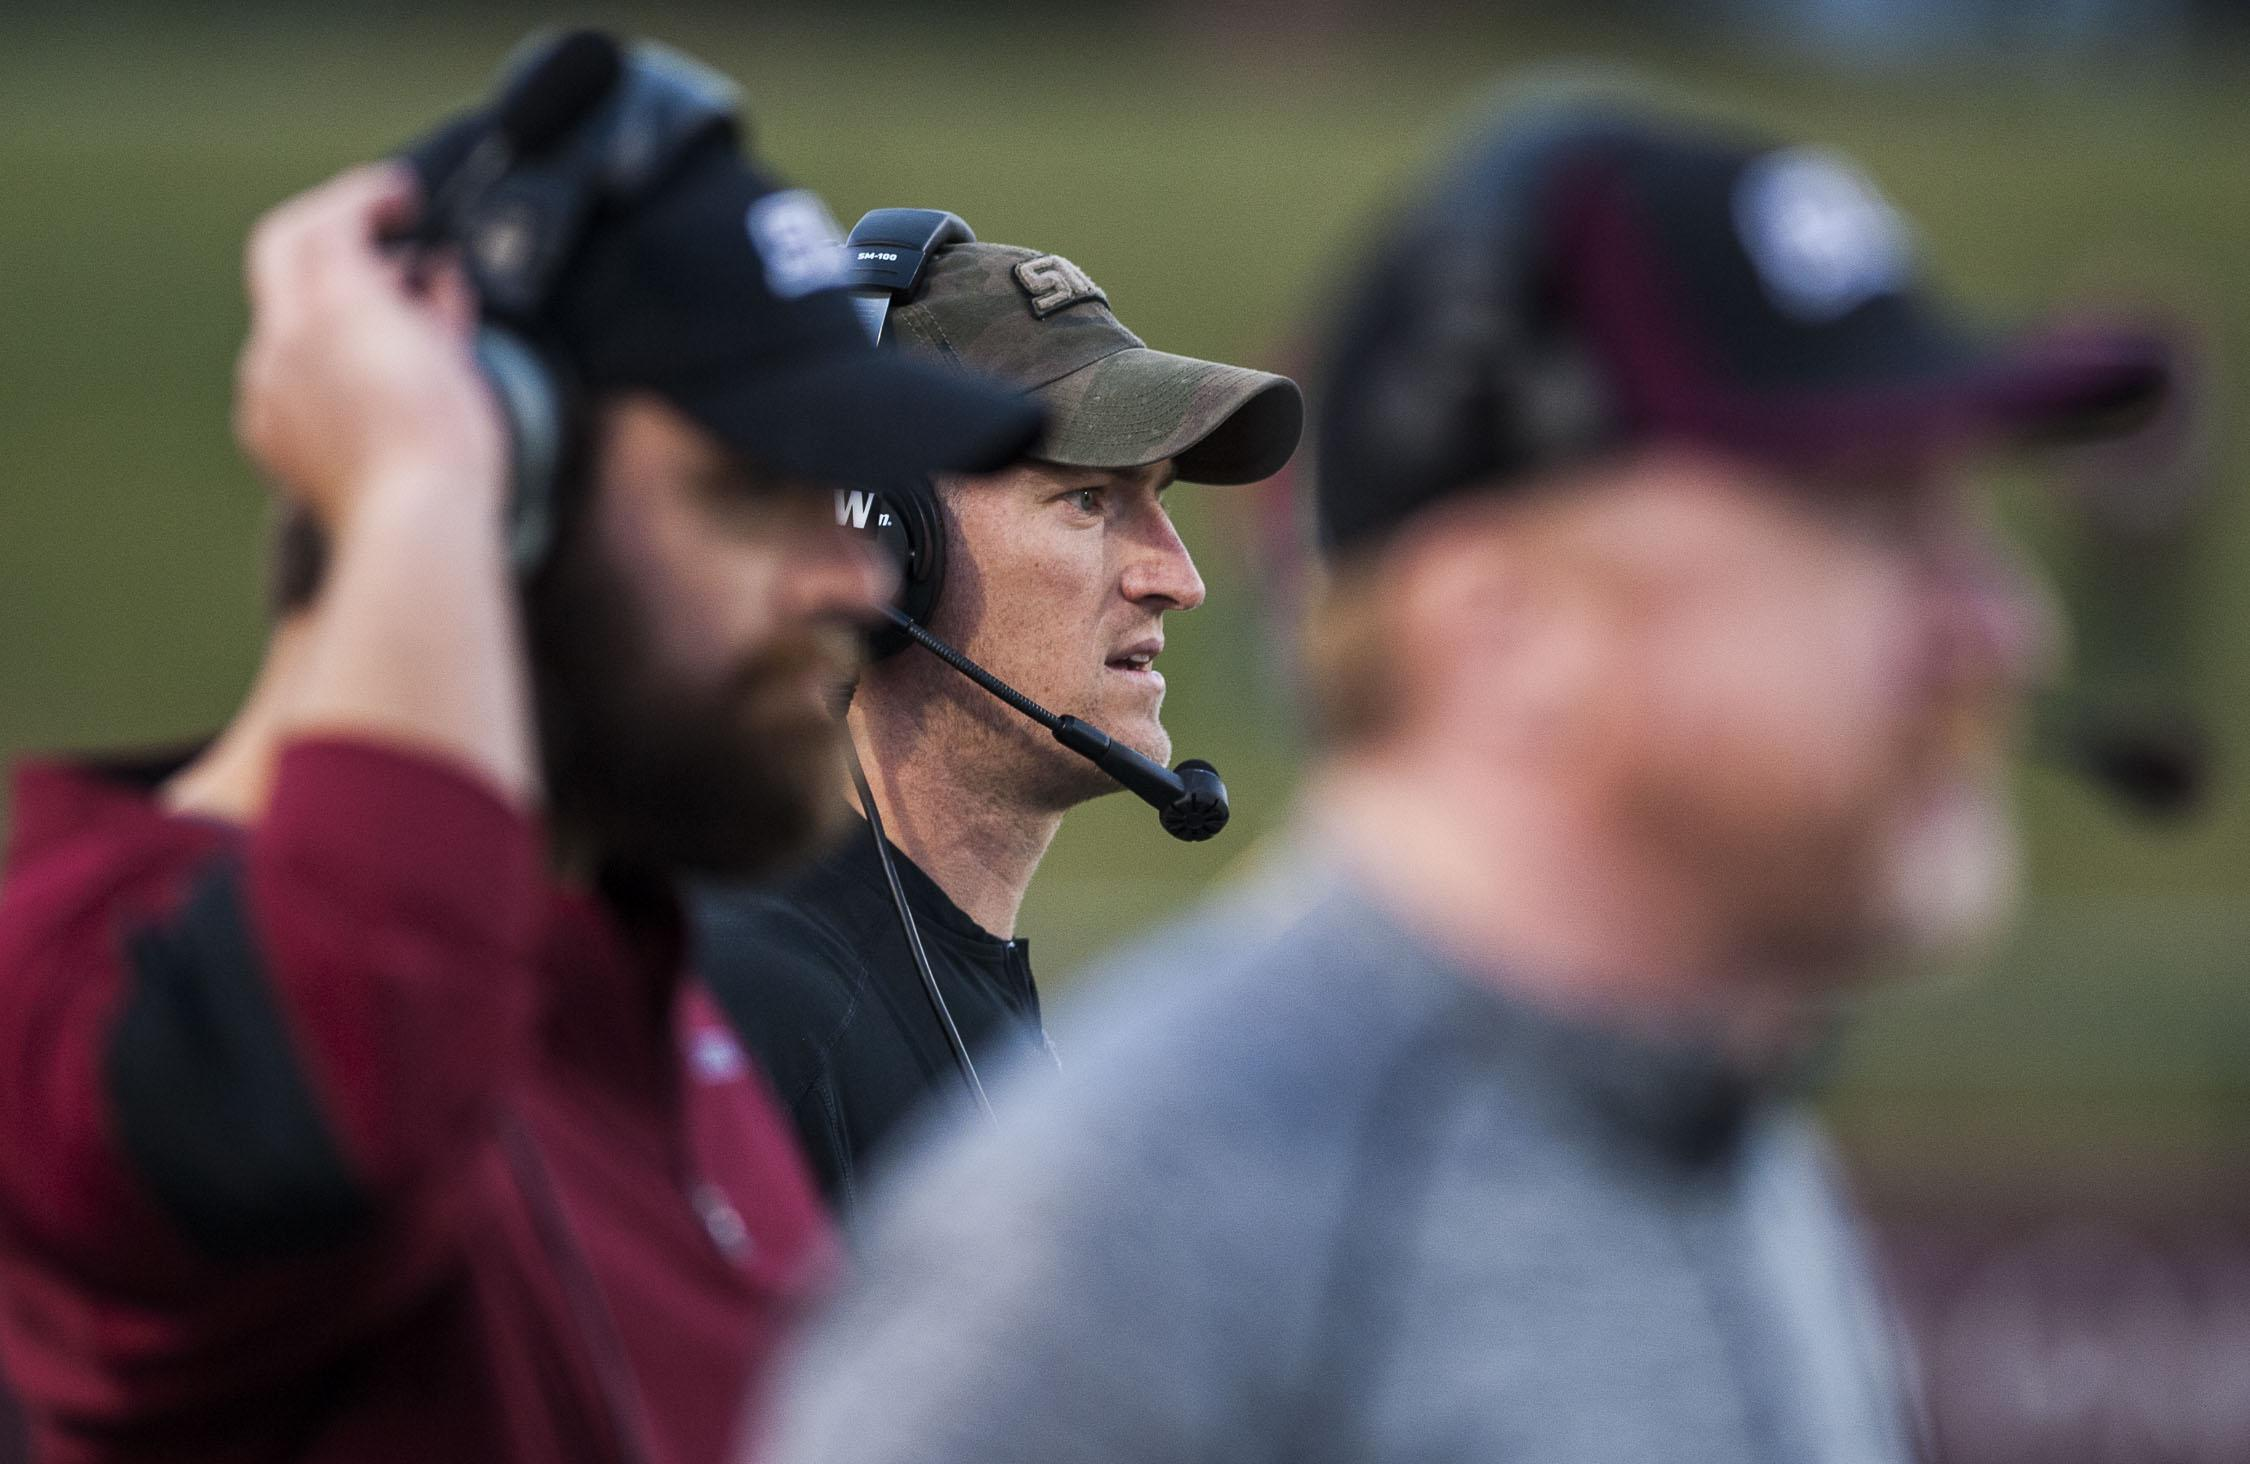 Coach Nick Hill and his coaching staff watch a play Saturday, Nov. 5, 2016, during the Salukis' 35-28 win over the University of South Dakota Coyotes at Saluki Stadium. (Ryan Michalesko | @photosbylesko)